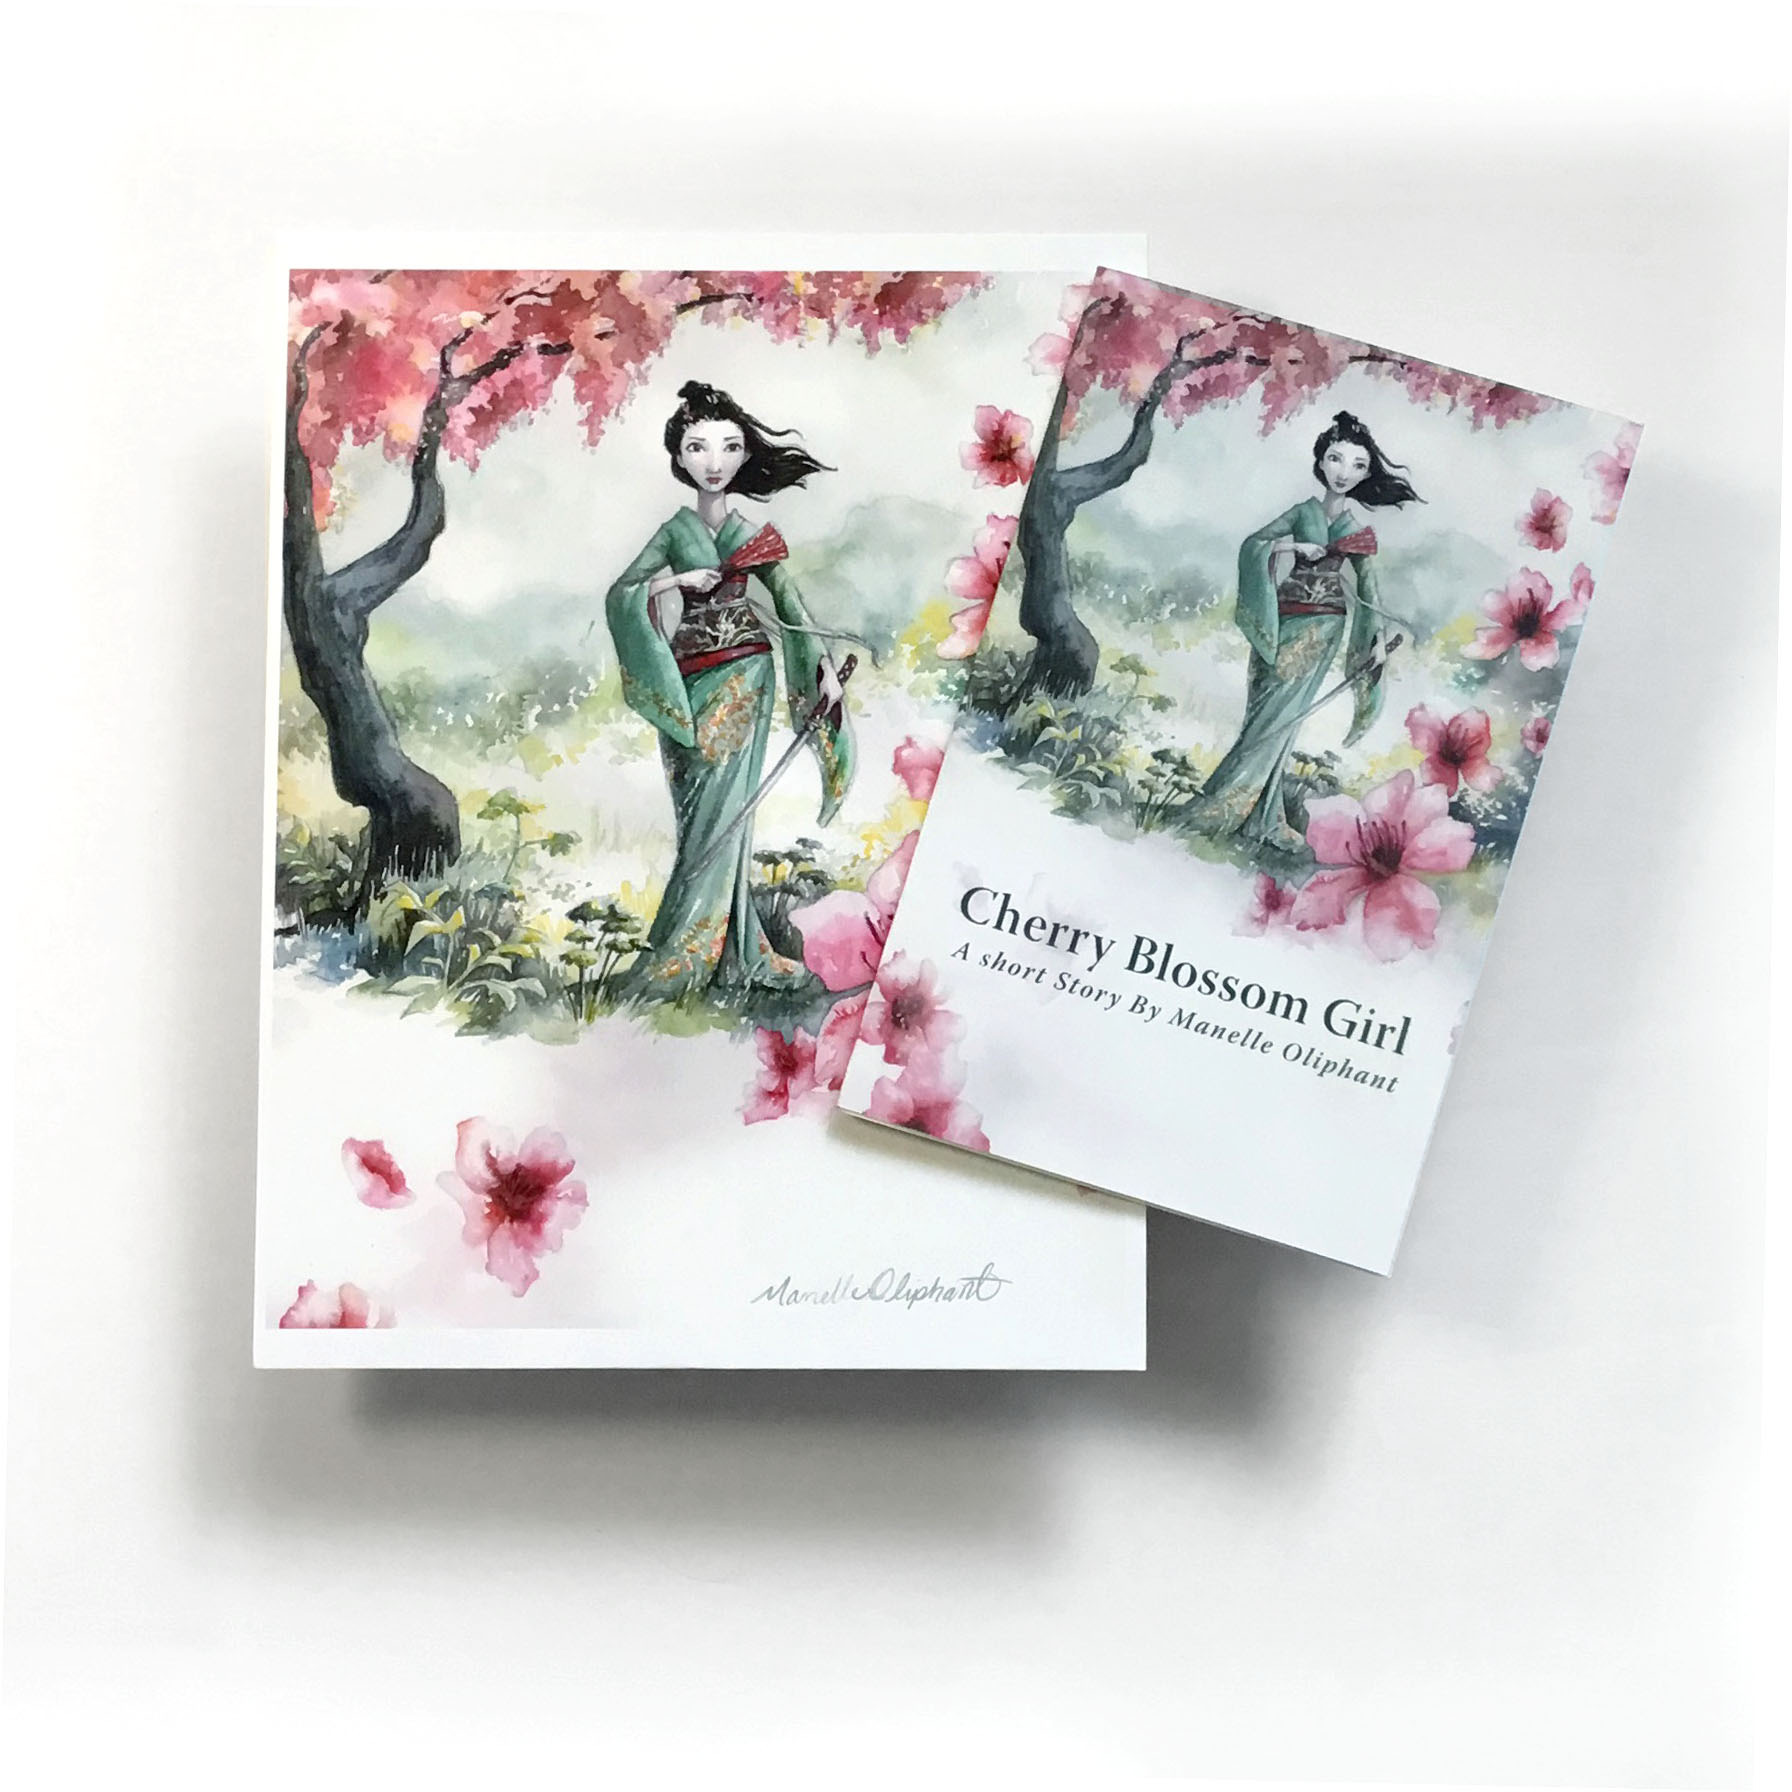 Cherry Blossom Girl Print and MiniBook